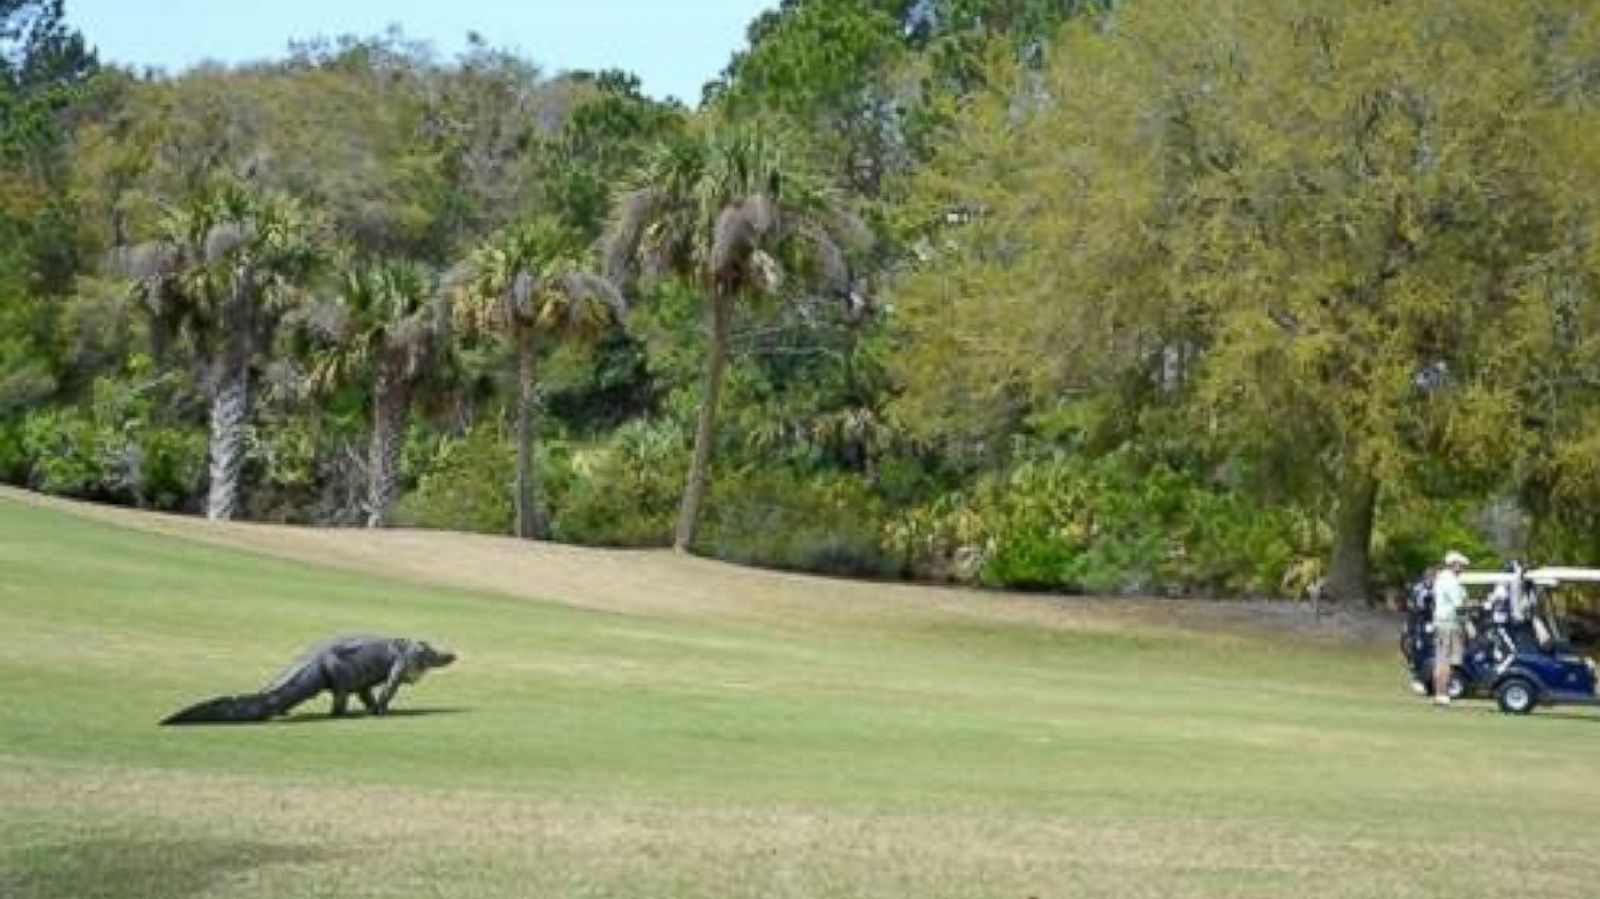 Giant Alligator Interrupts South Carolina Golf Tournament Abc News